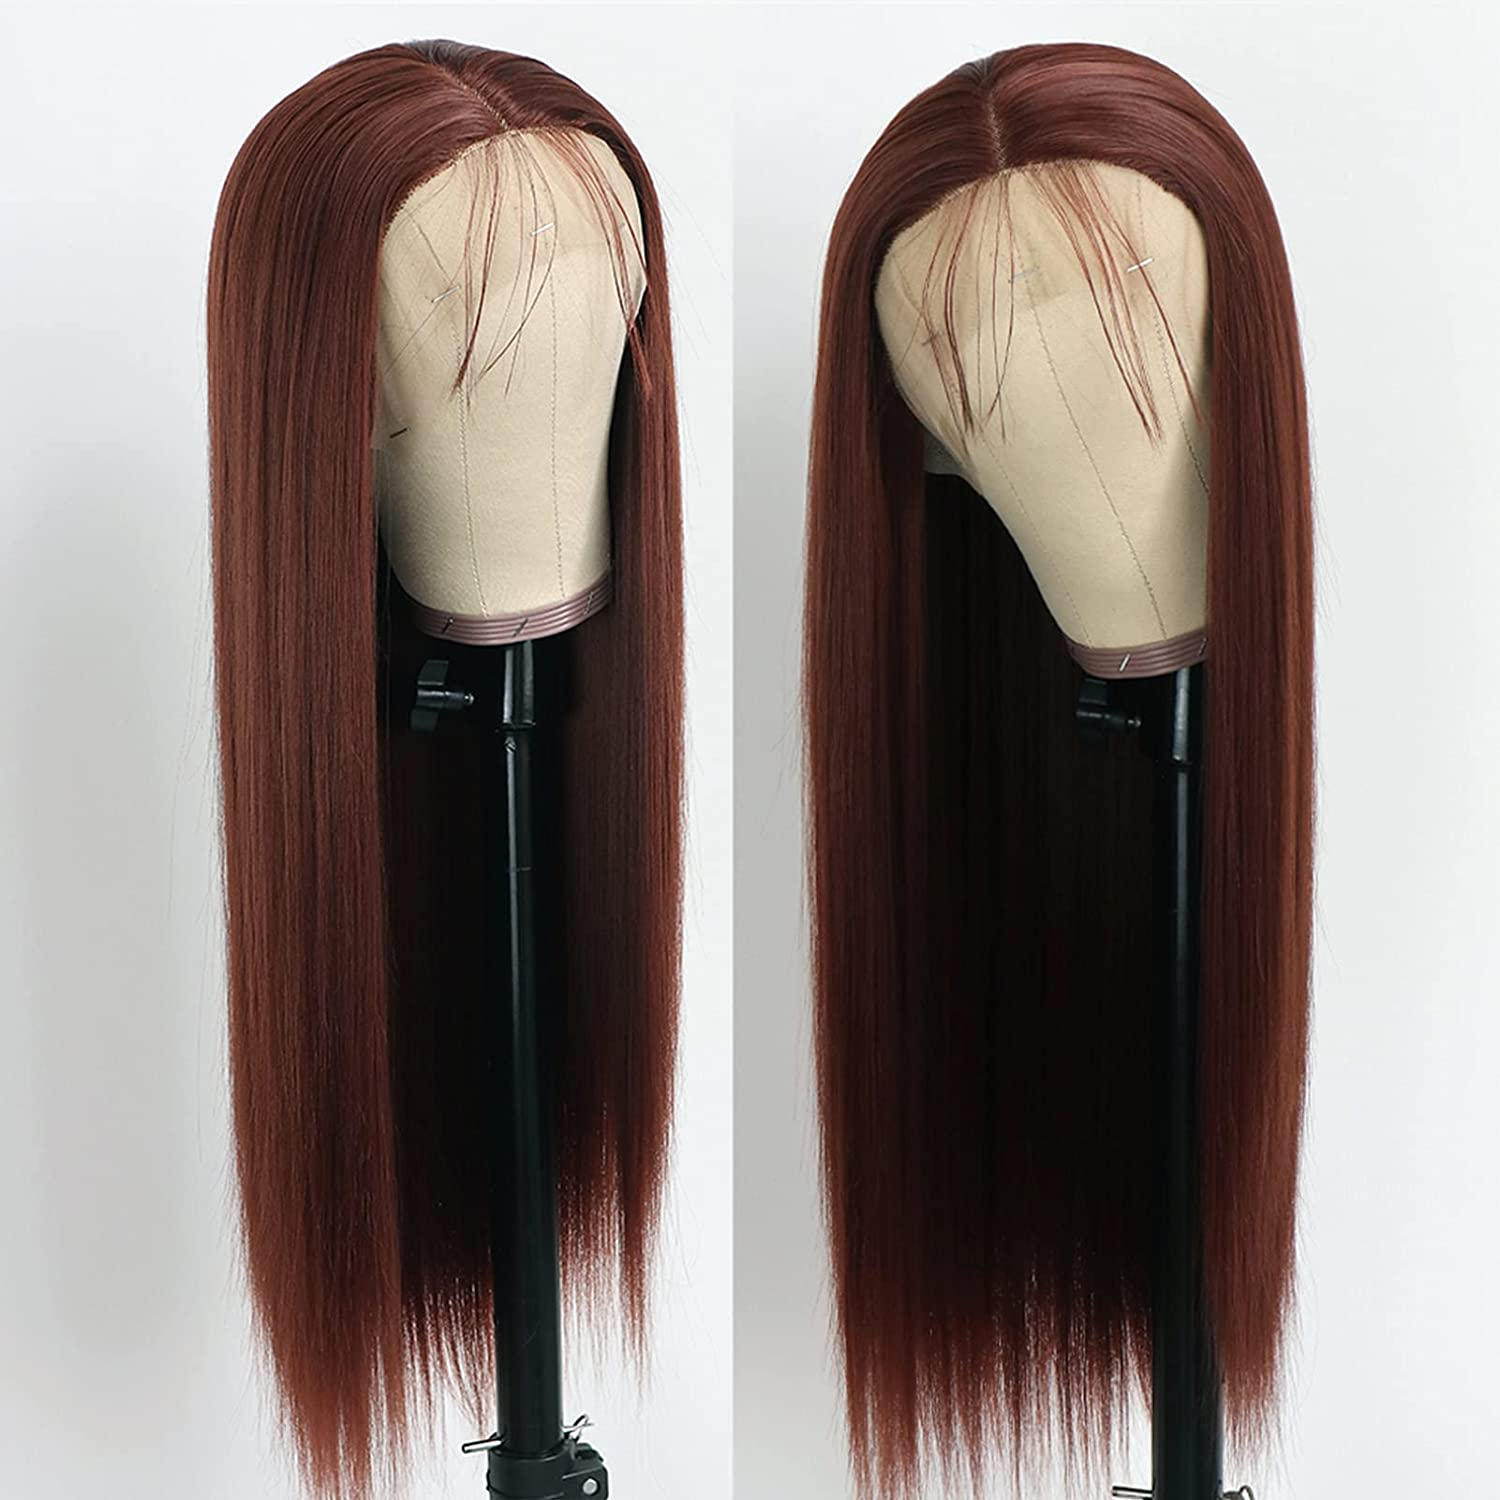 Conkolar Heat Resistant Synthetic Lace Bl 55% OFF for Arlington Mall Fashion Front Wigs